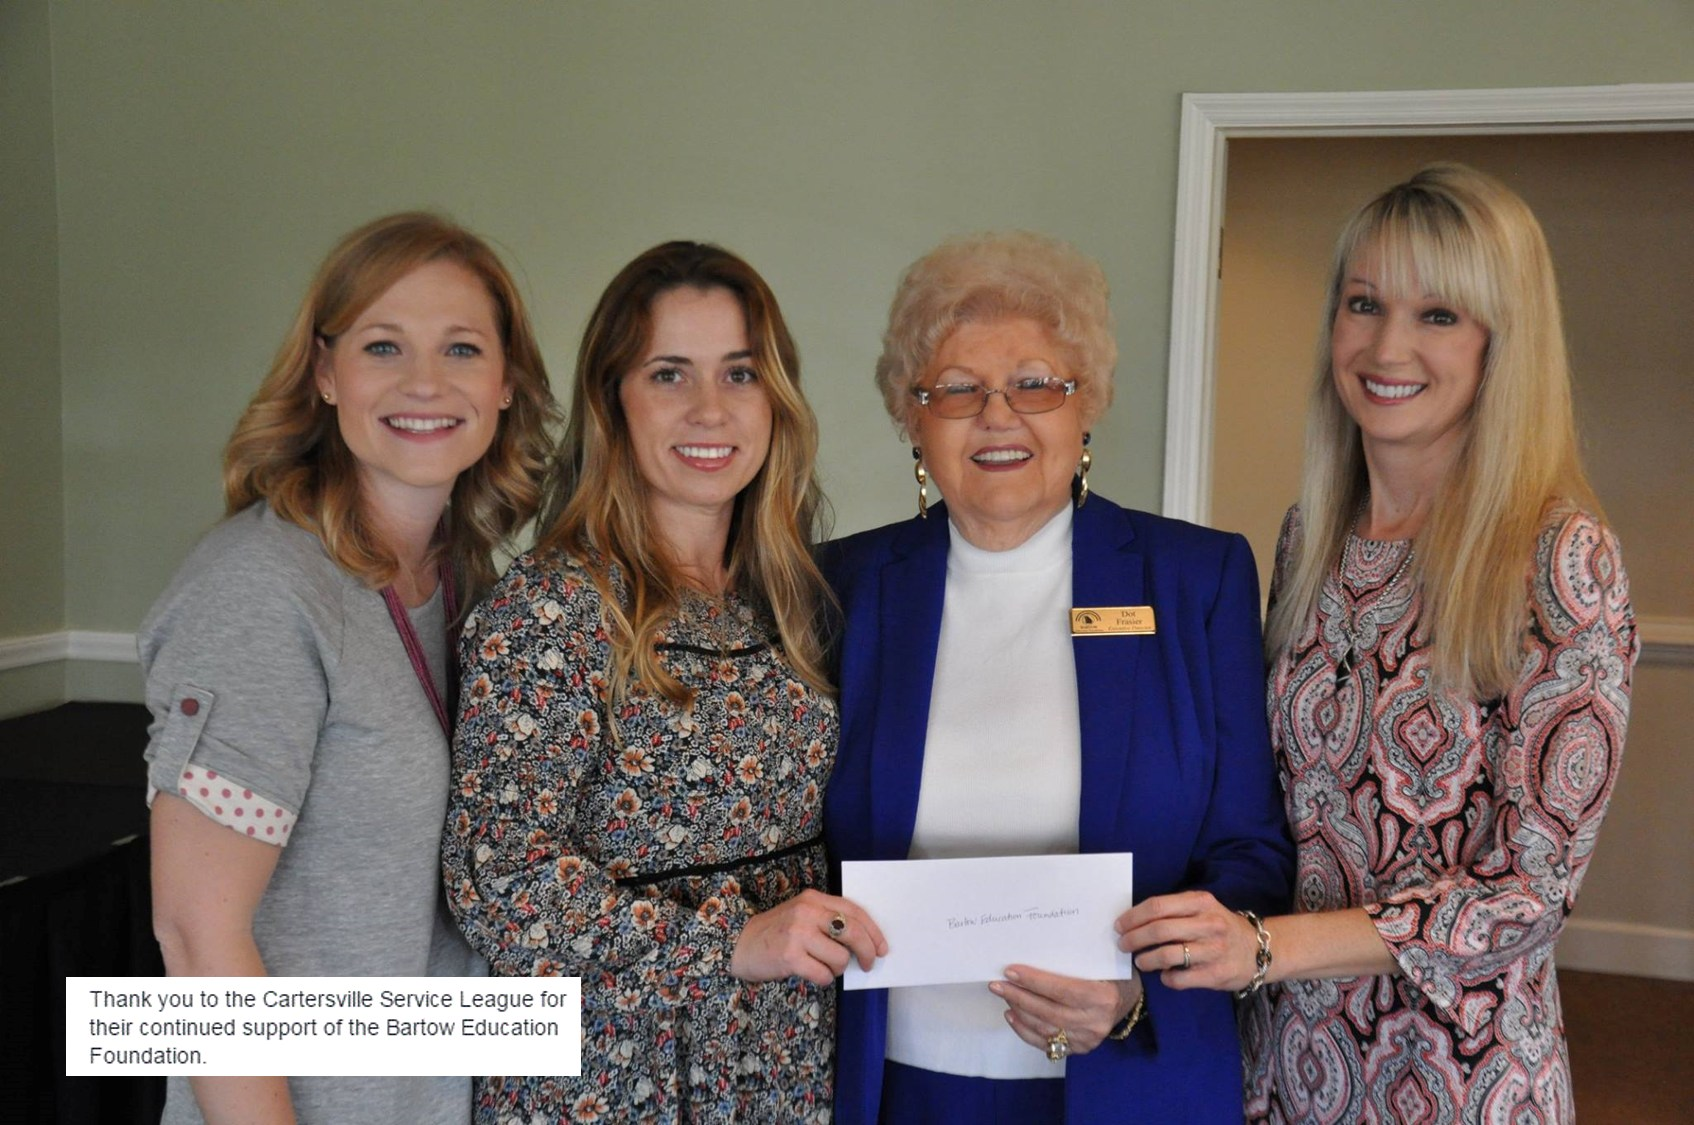 Ms. Dot with Cartersville Service League present check